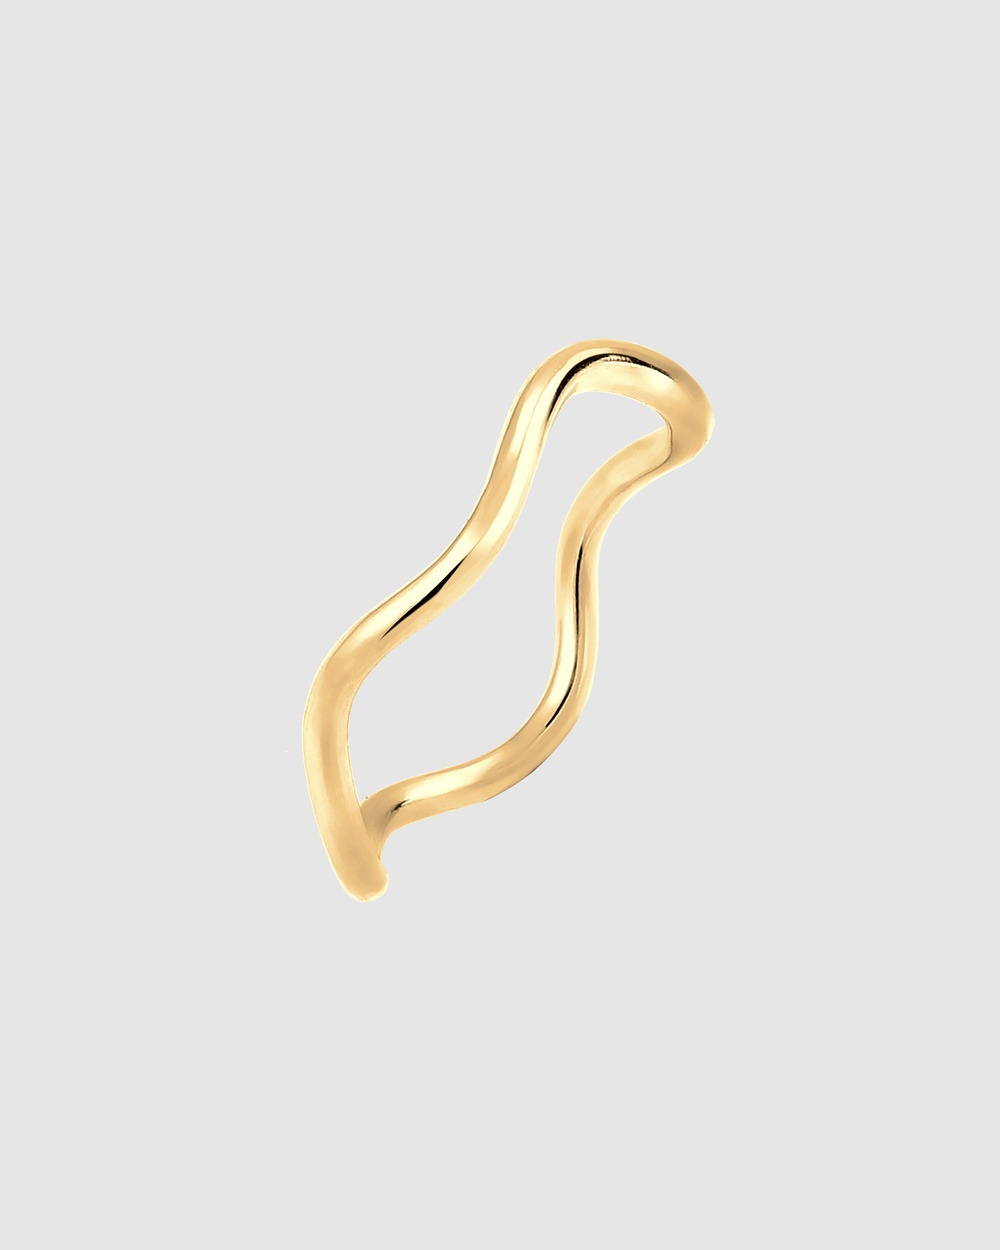 Elli Jewelry Ring Waves Geo 925 Sterling Silver Gold Plated Jewellery Gold